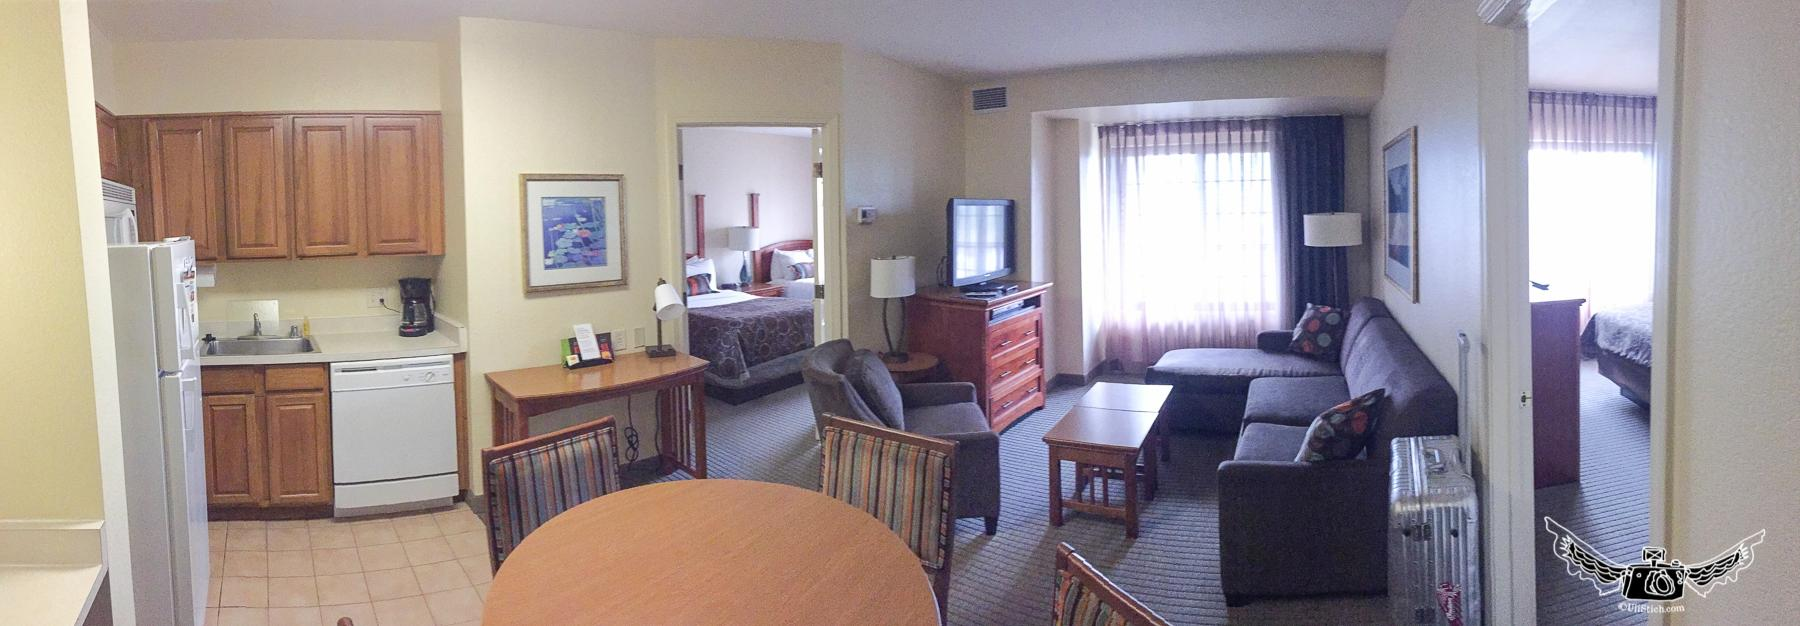 staybridge suites anaheim (ca) 2017 hotel review - family vacation